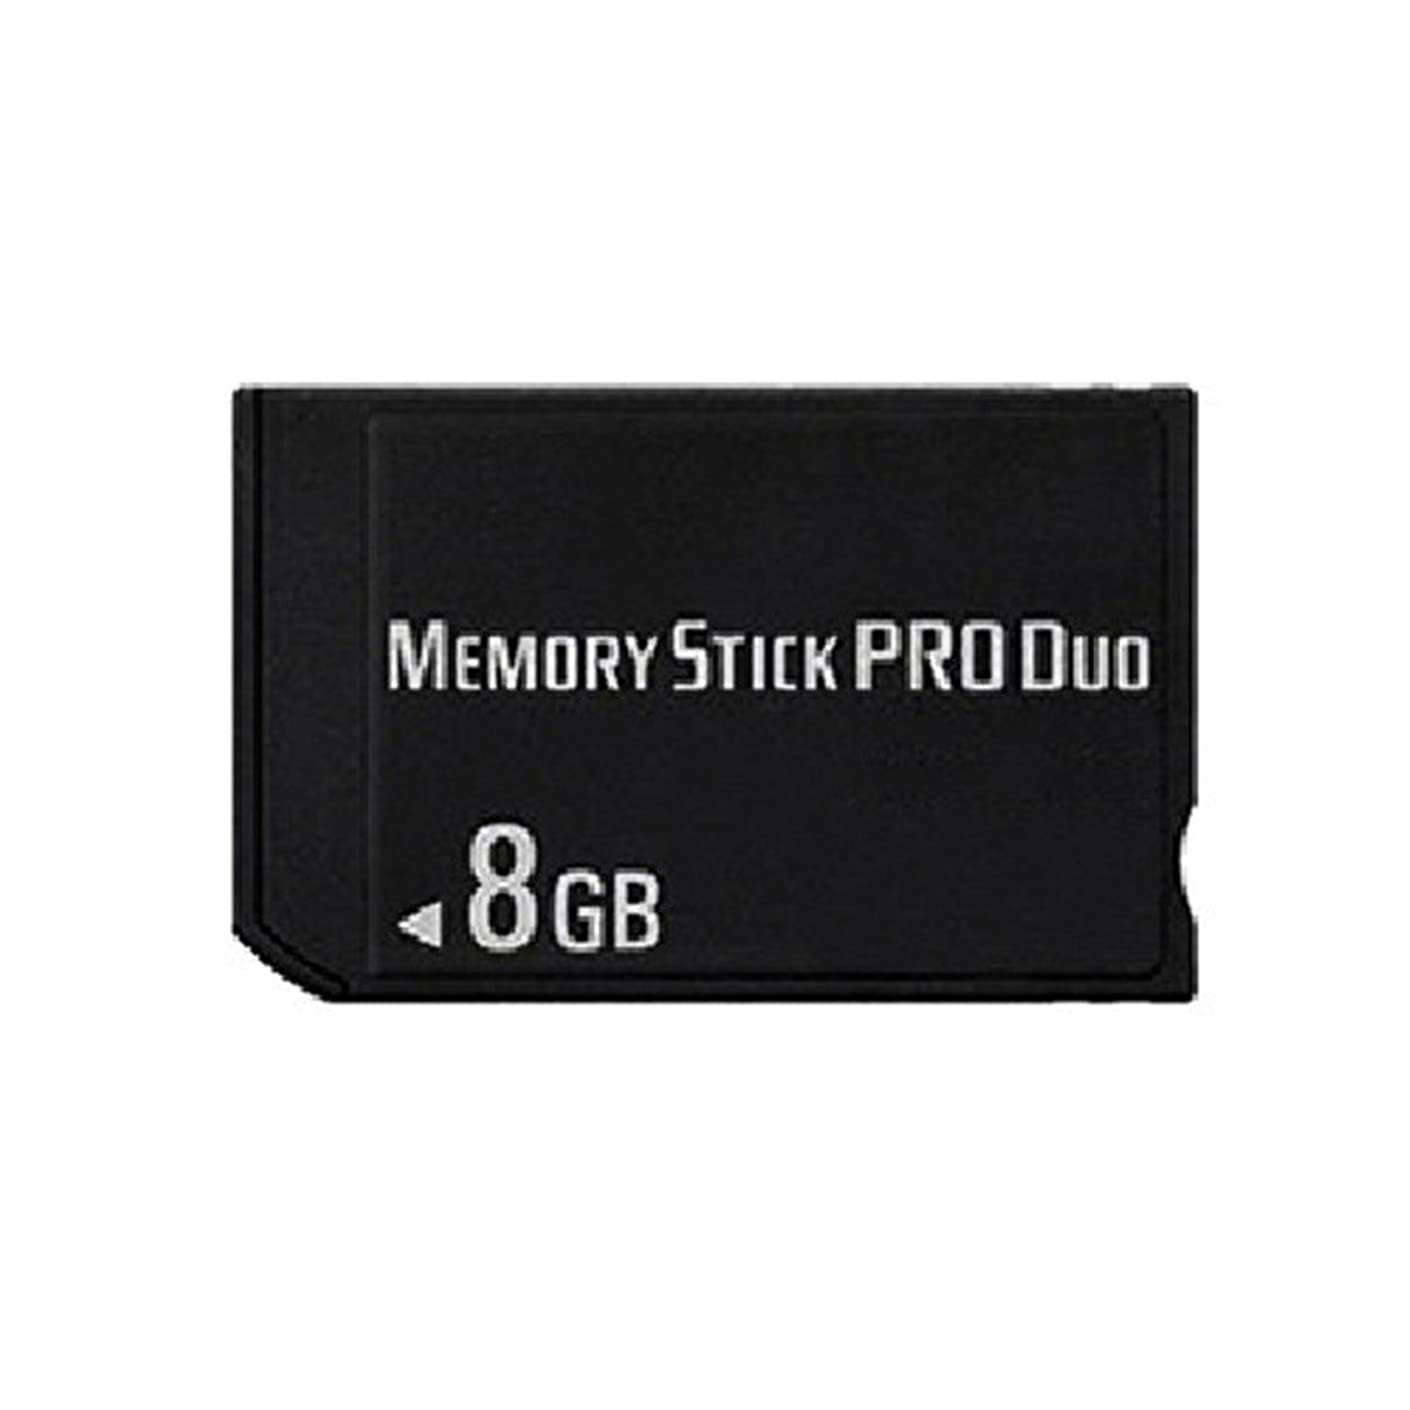 8GB MS Memory Stick Pro Duo Card Storage for Sony PSP 1000/2000/3000 Game Console